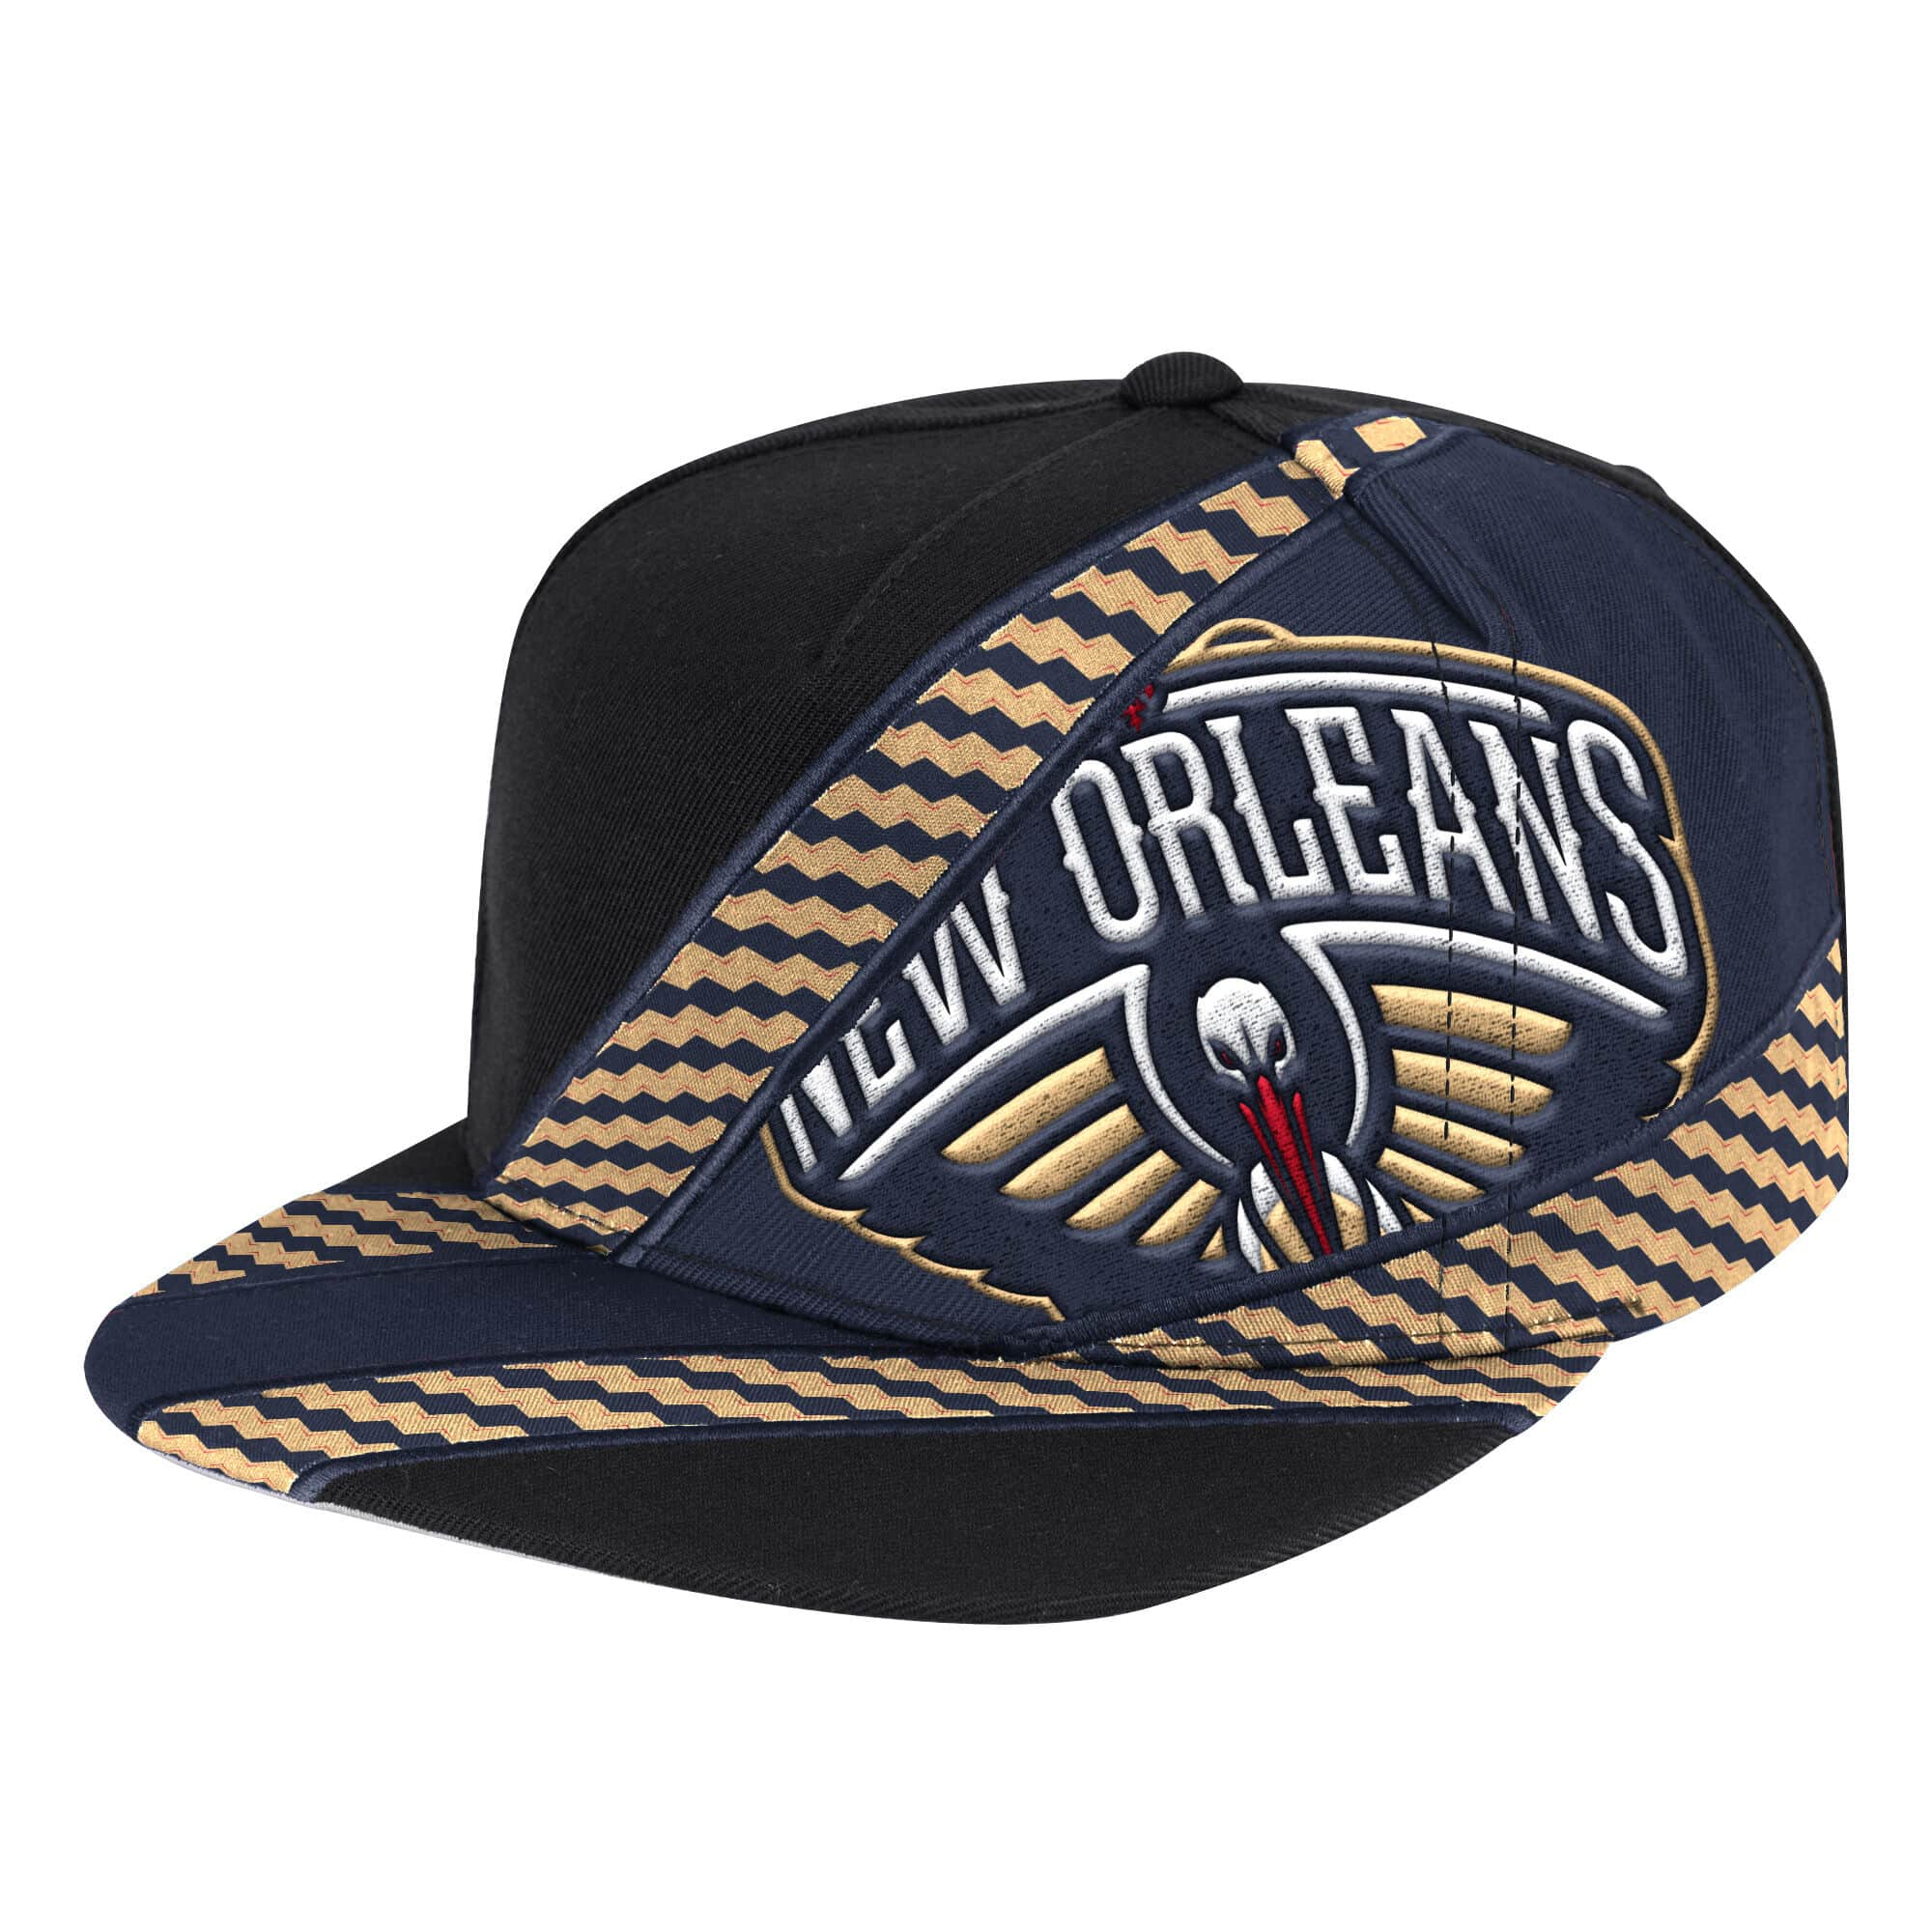 Team DNA Inset Snapback New Orleans Pelicans